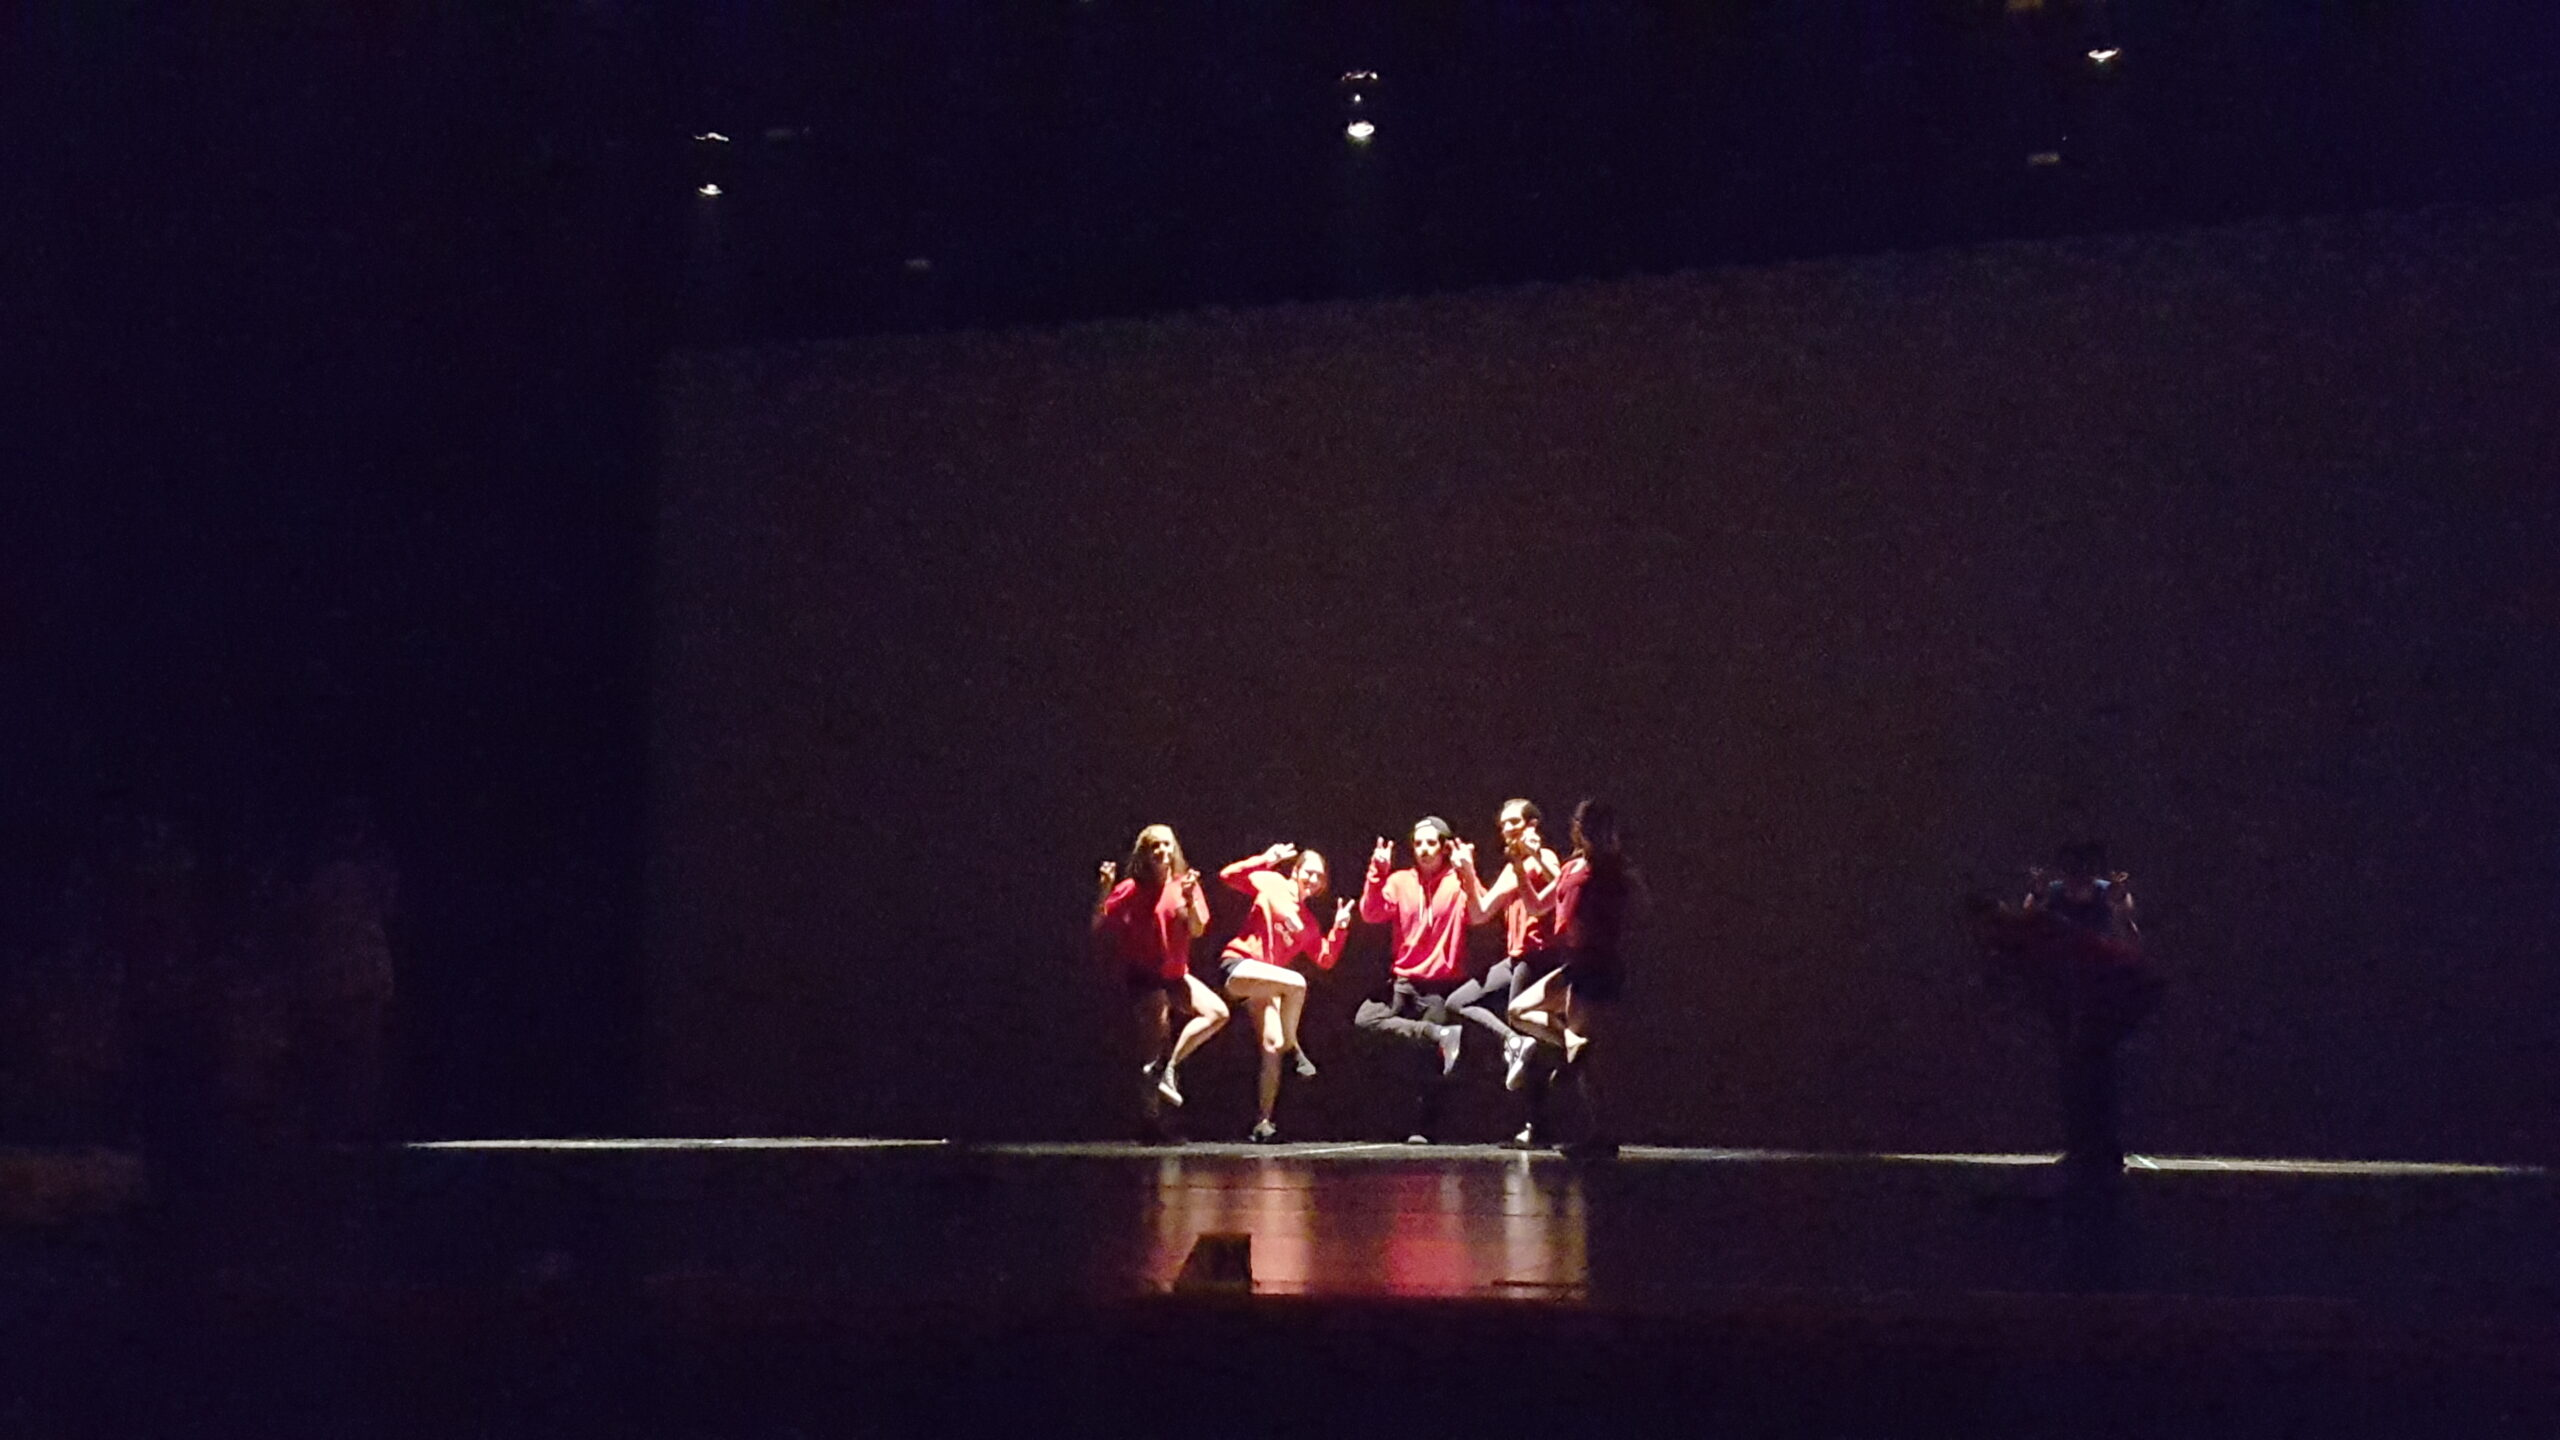 dance group on stage